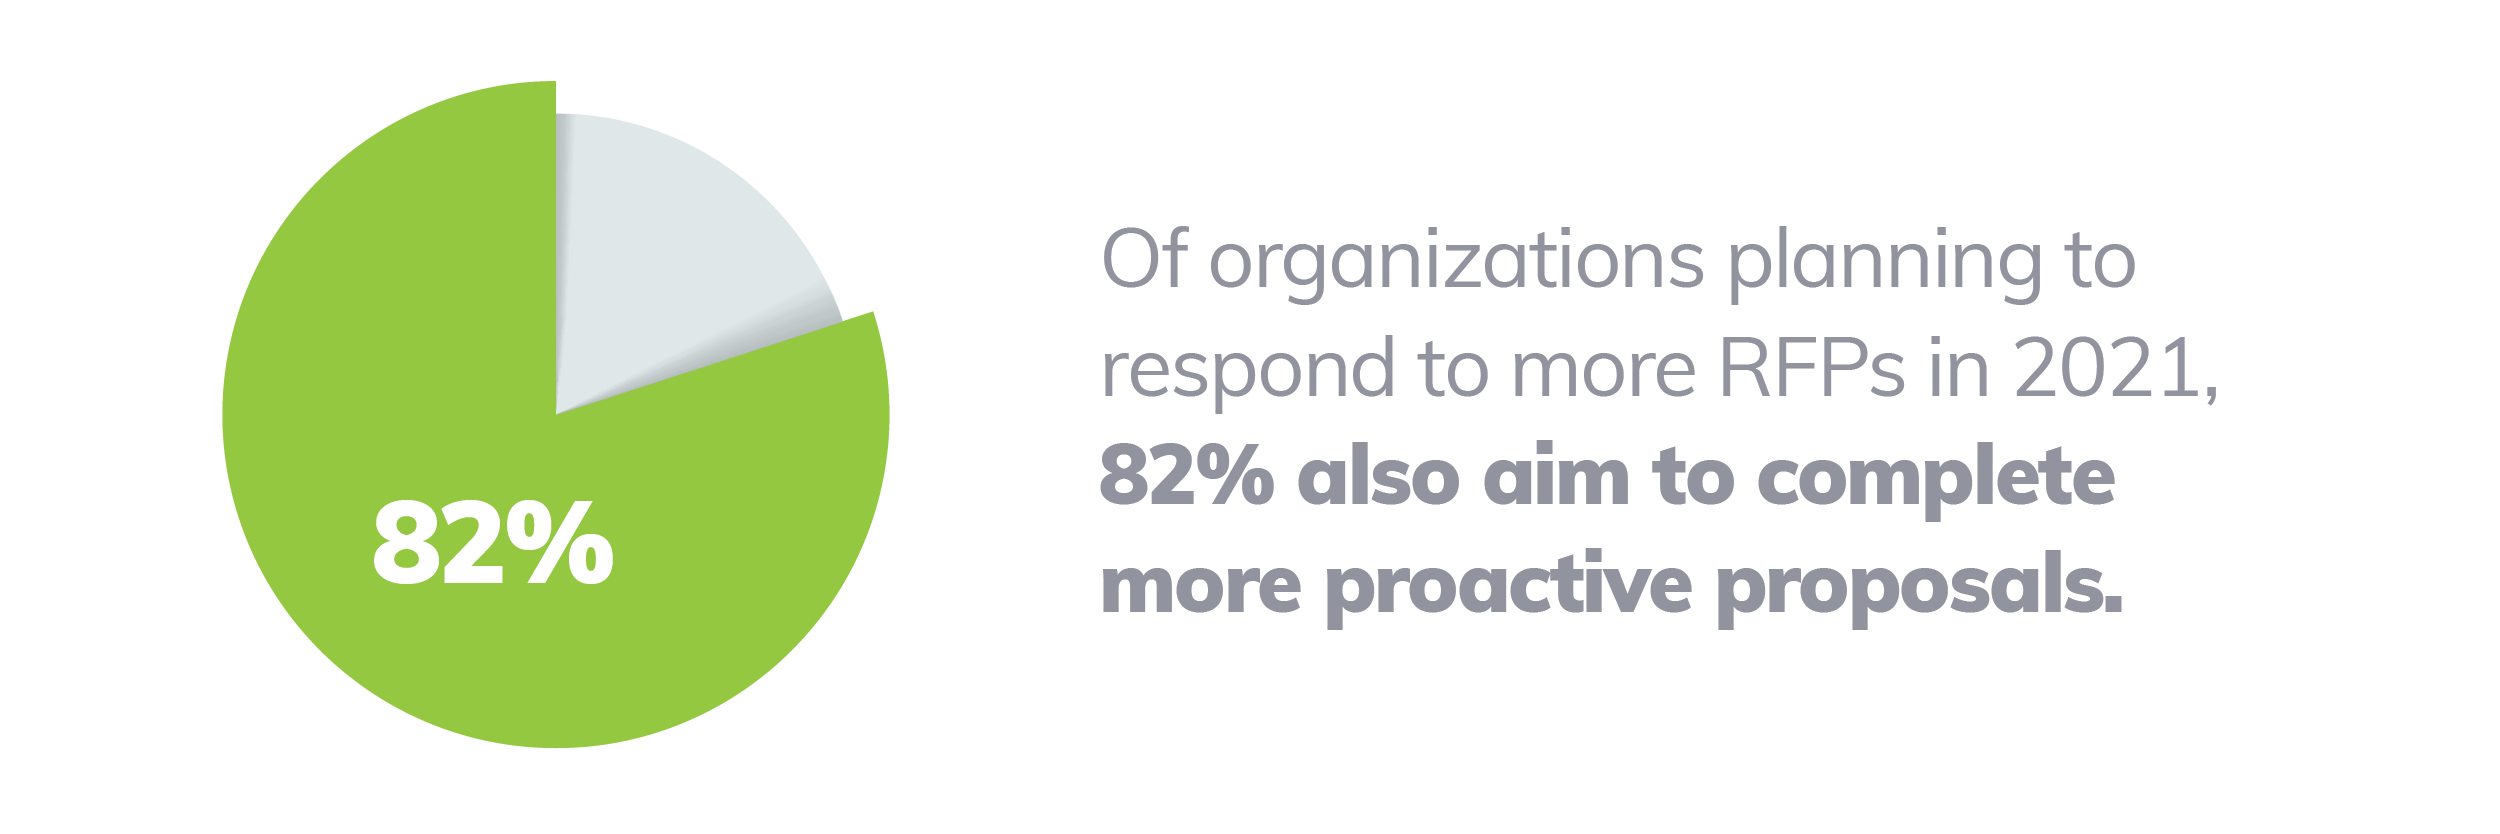 Of organizations planning to respond to more RFPs in 2021, 82% also aim to complete more proactive proposals